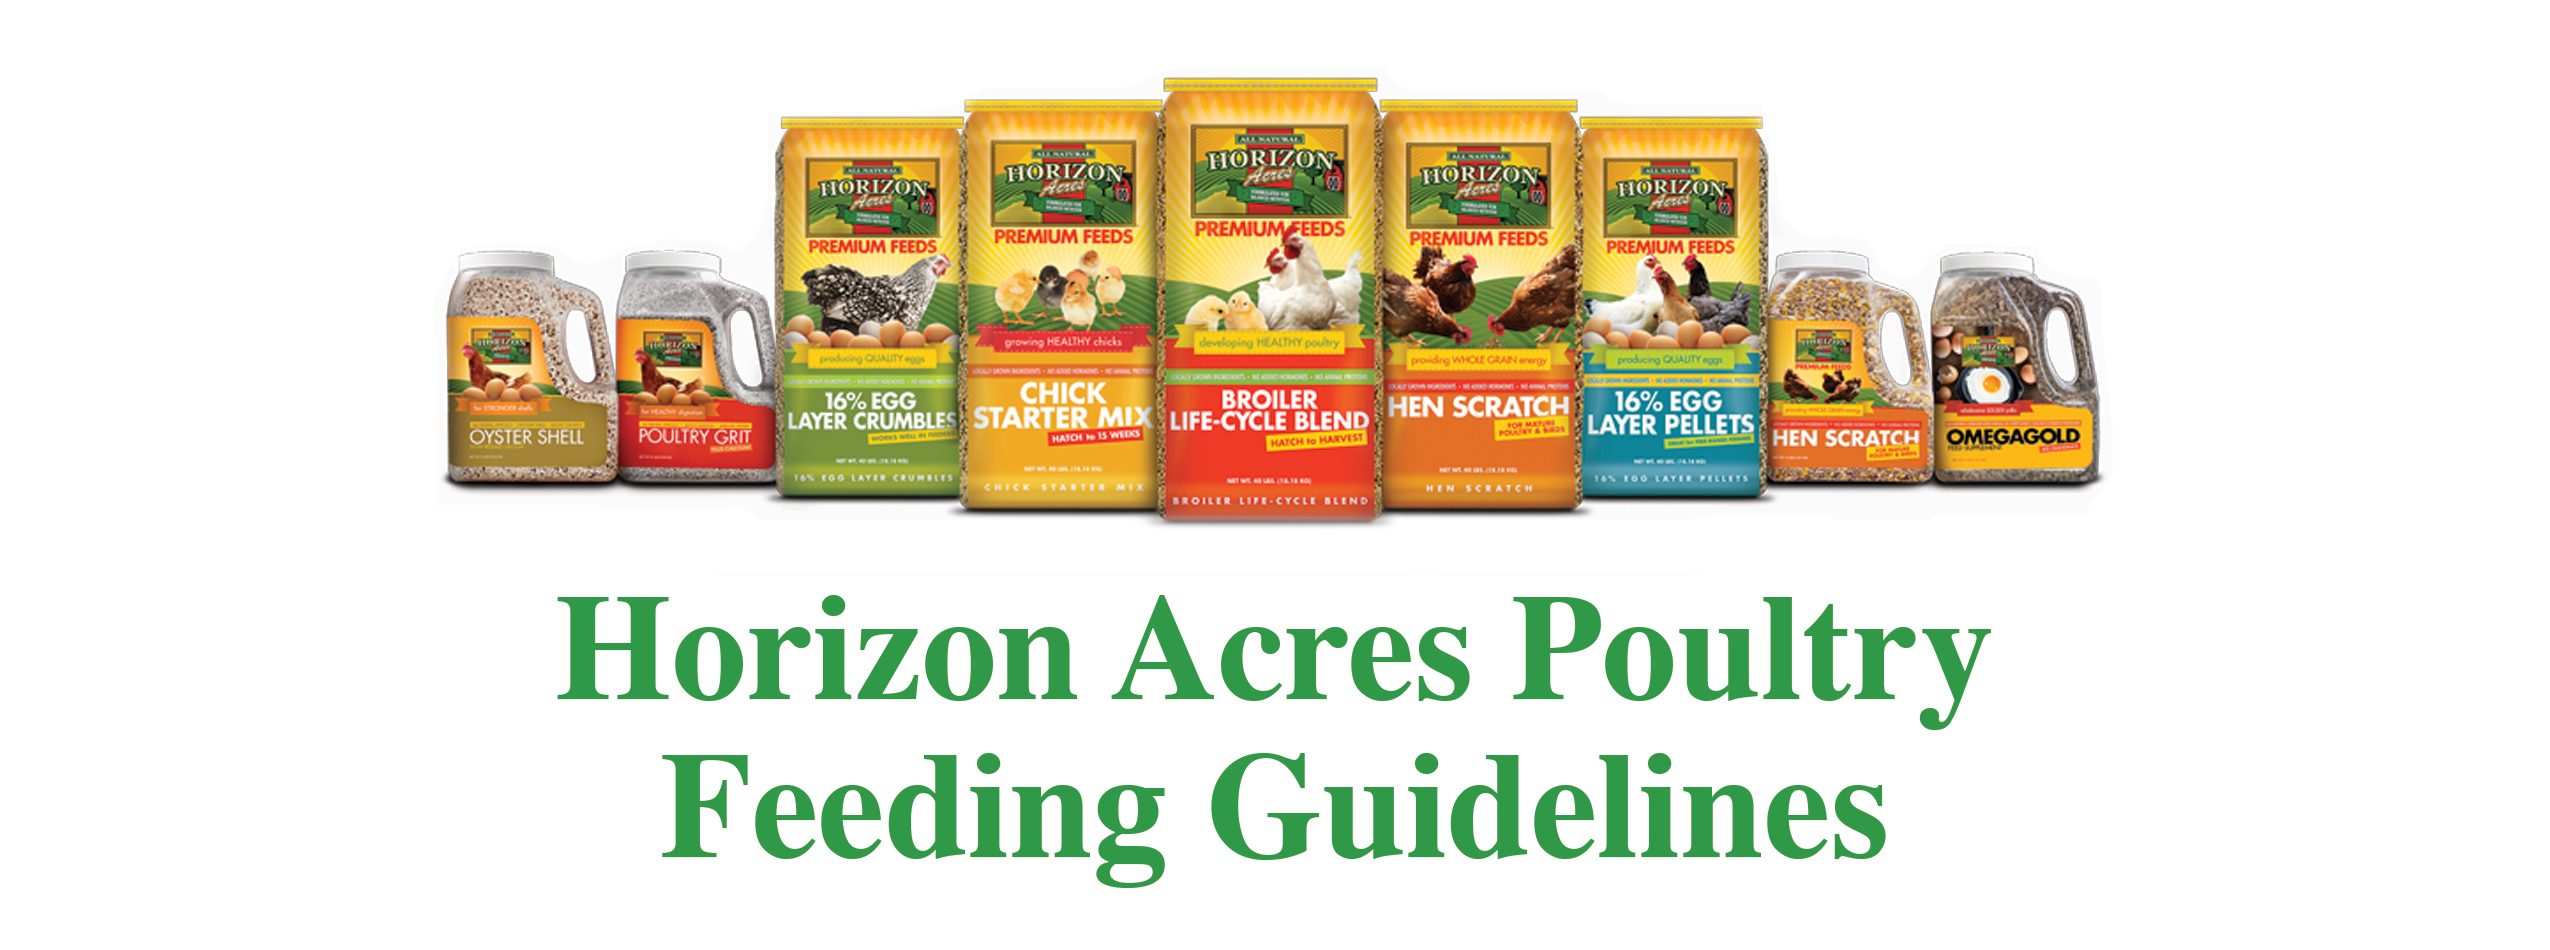 Horizon Acres Poultry Feeding Guidelines